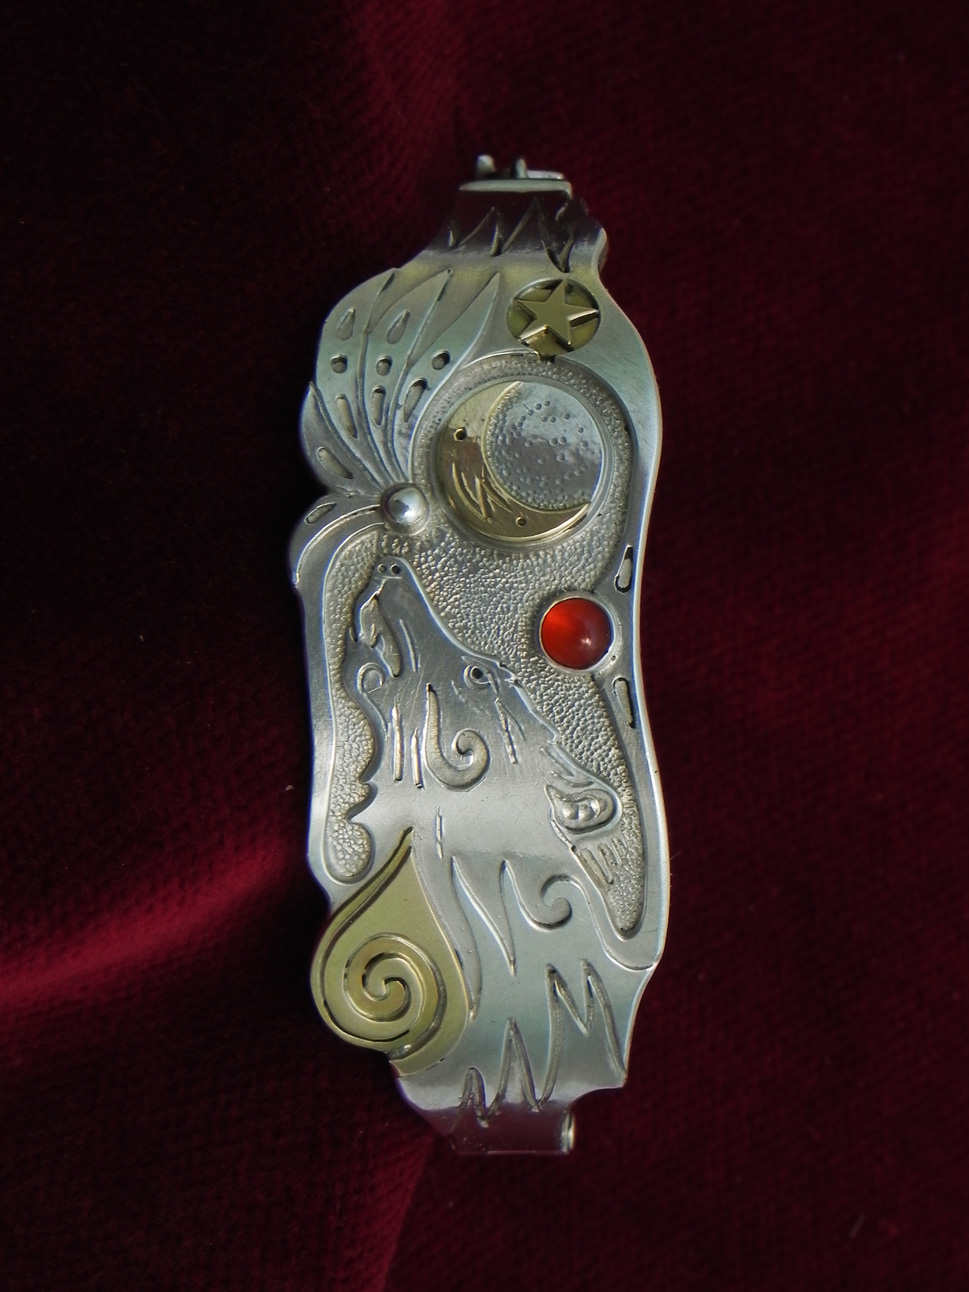 Silver bracelet with howling Wolf and moon